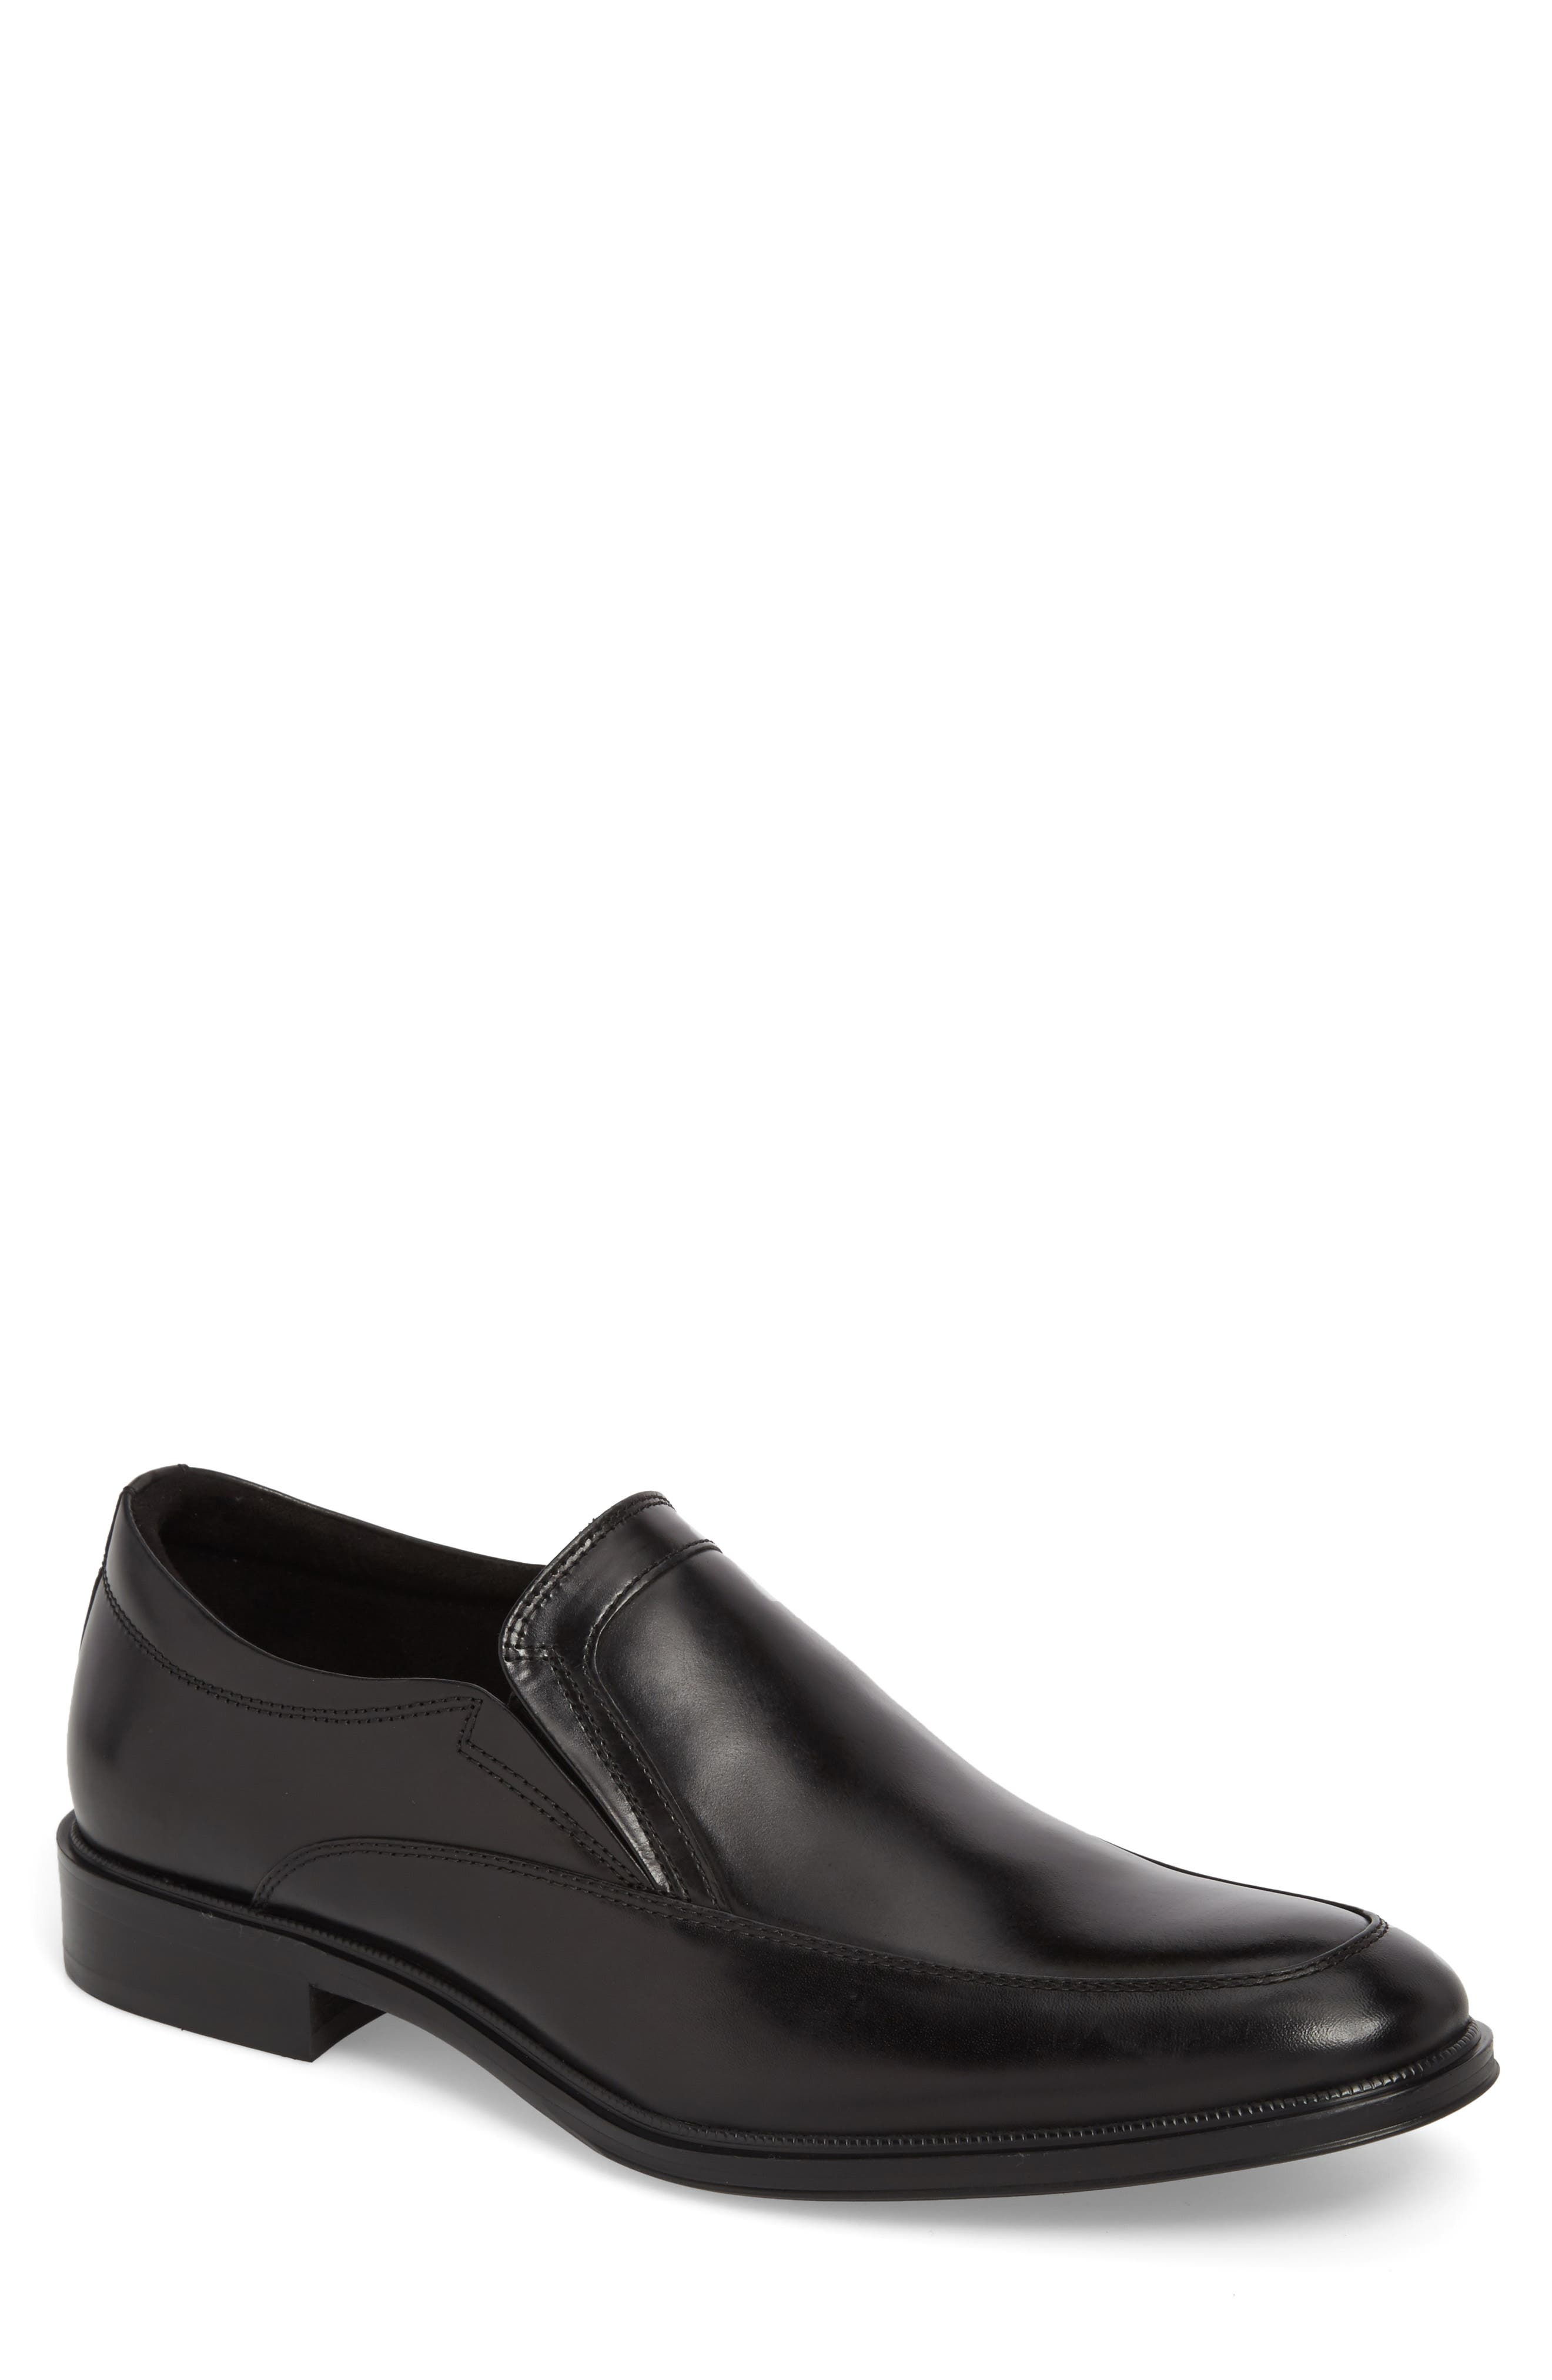 KENNETH COLE NEW YORK,                             Tully Venetian Loafer,                             Main thumbnail 1, color,                             BLACK LEATHER